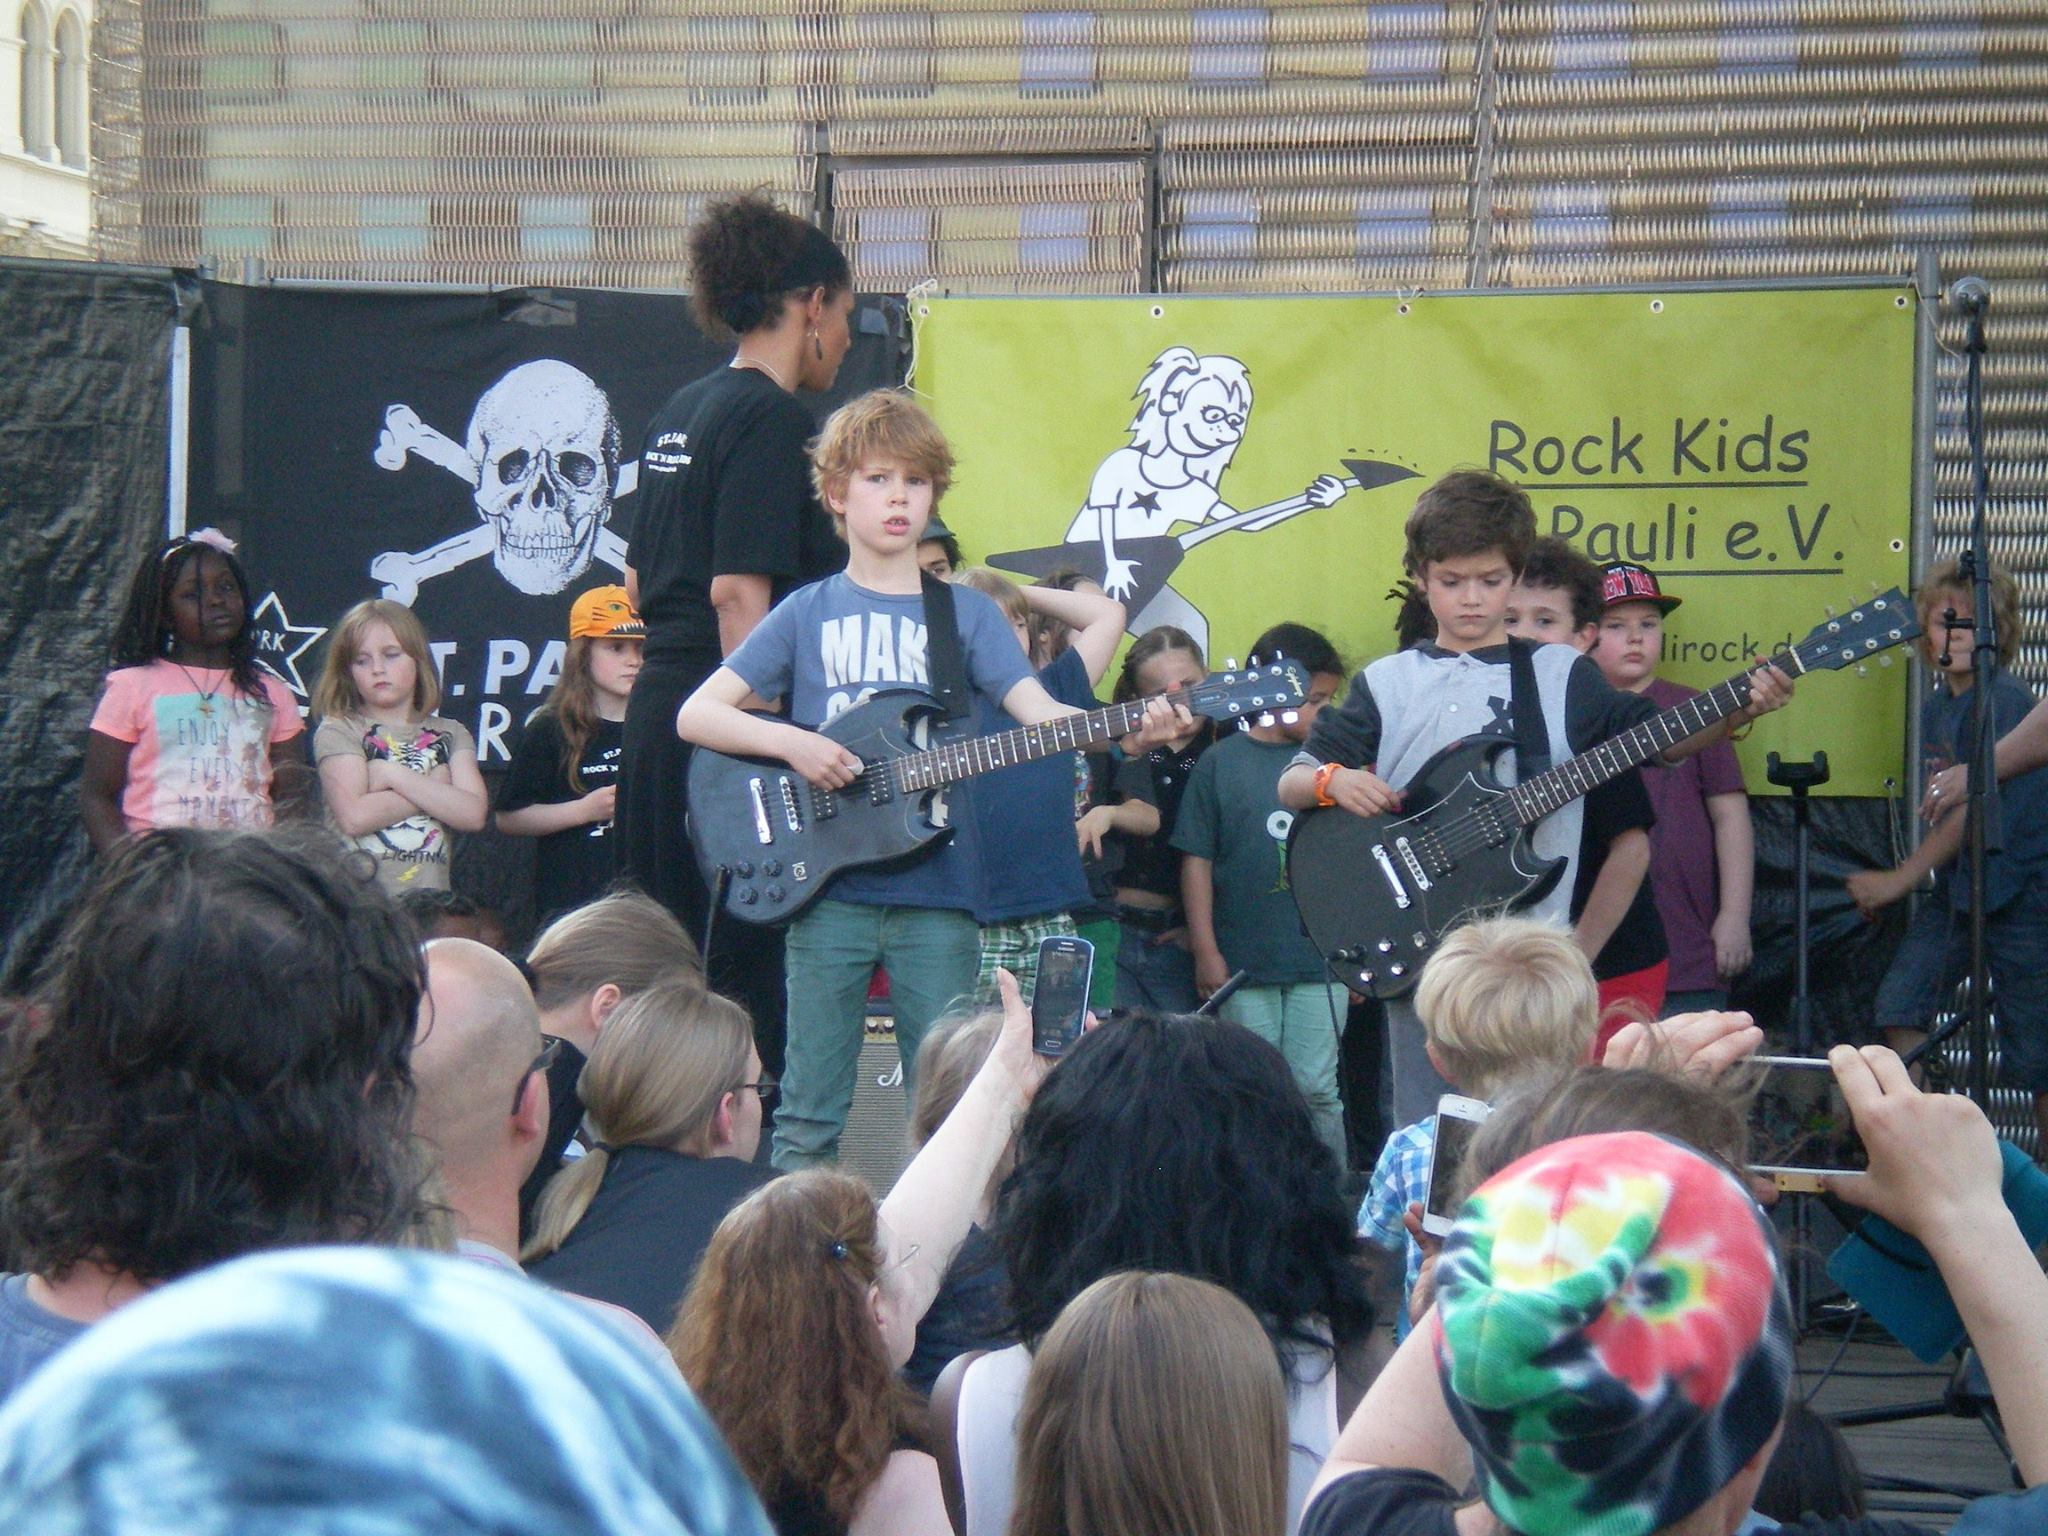 St. Pauli Rock Kids e.V.